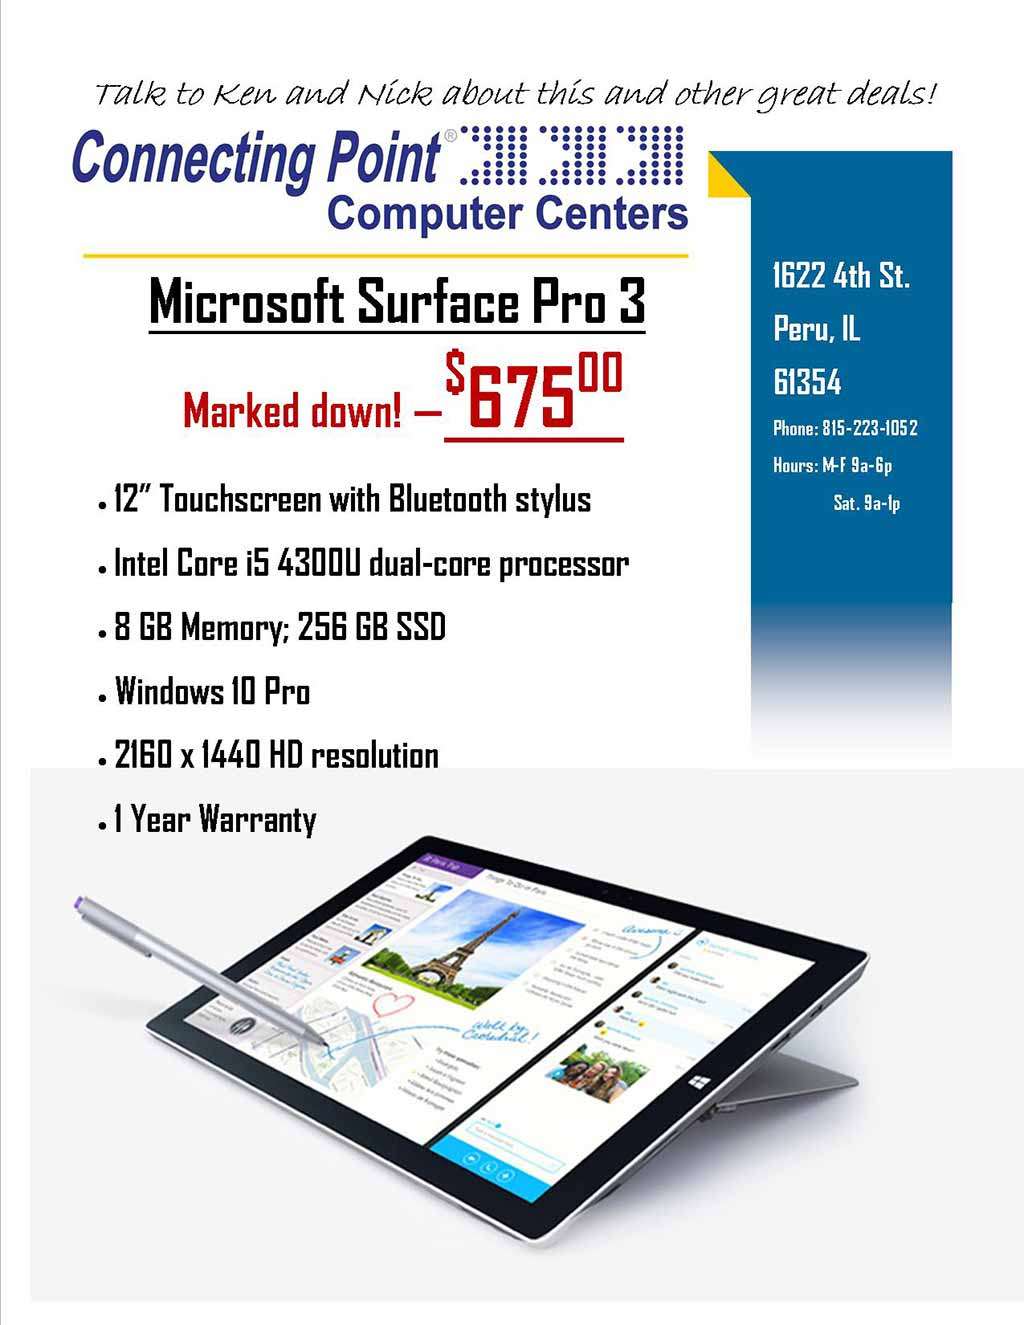 POTW - 5-30-17 Microsoft Surface Pro3 Marked Down $675